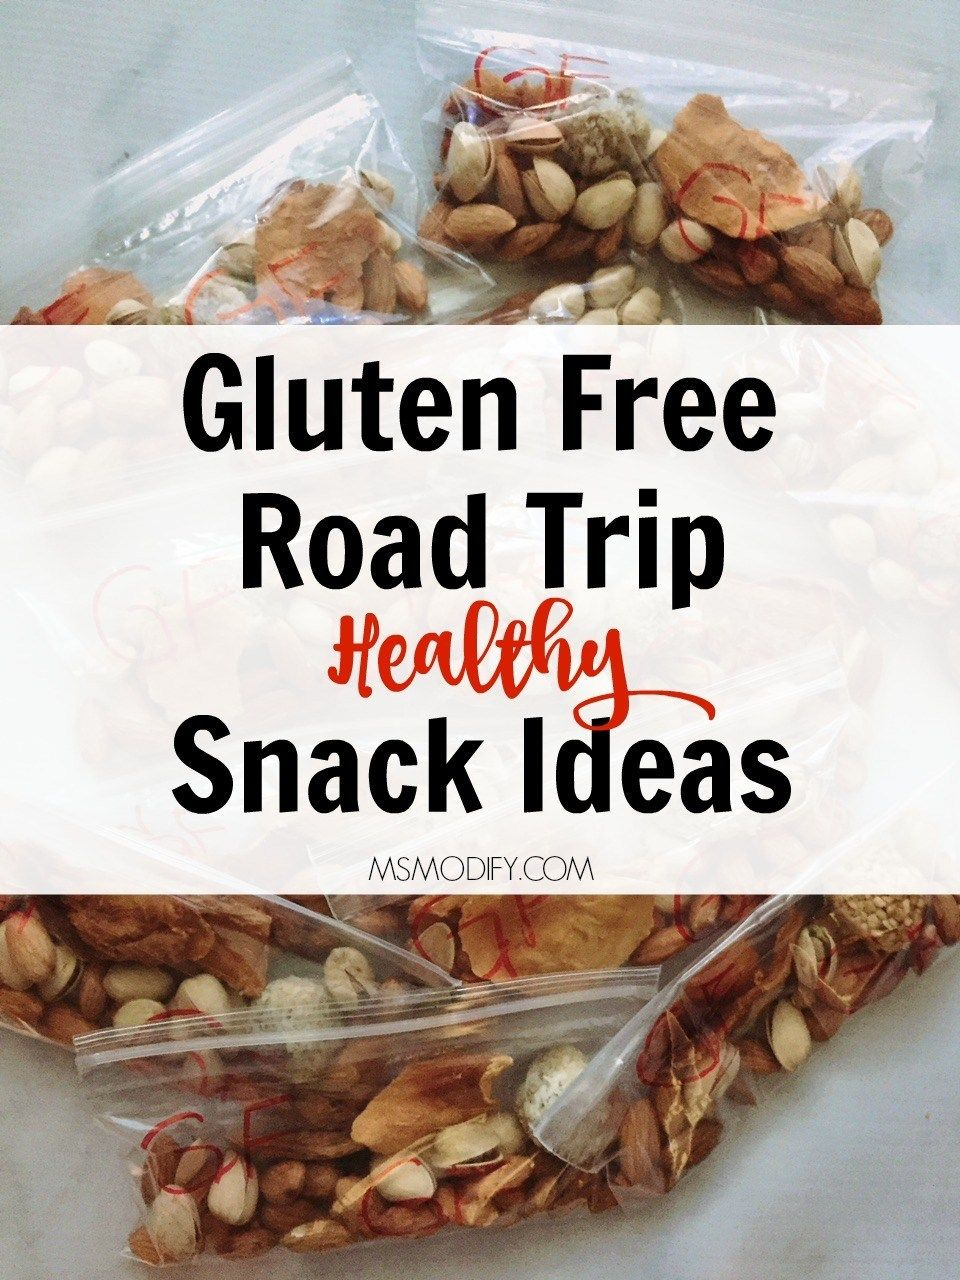 Gluten Free Road Trip Healthy Snack Ideas images